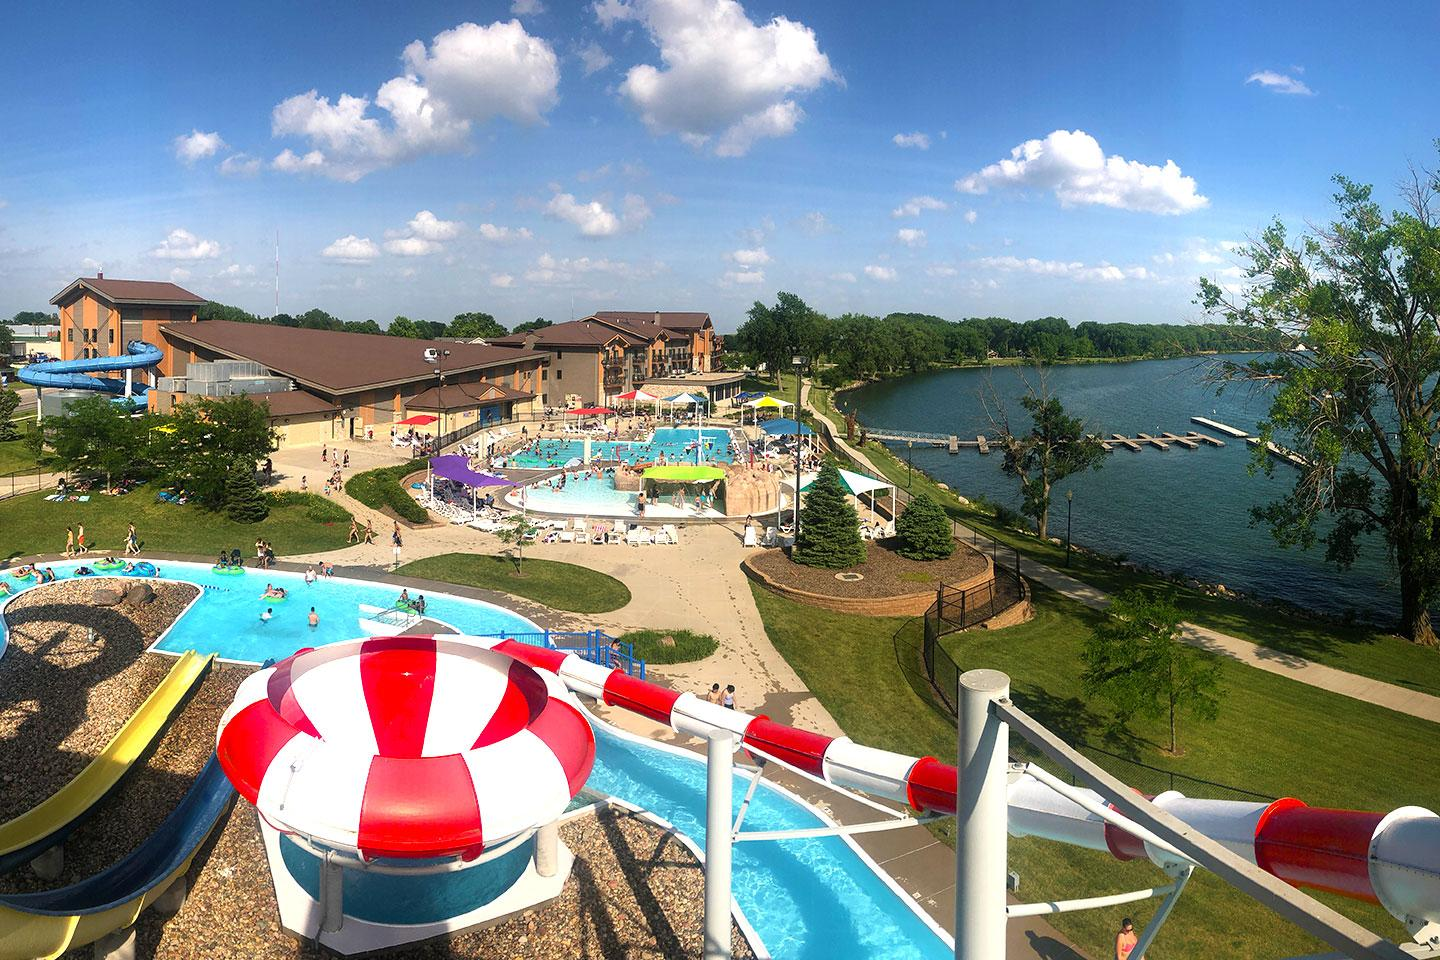 Kings Pointe waterpark and lake from above